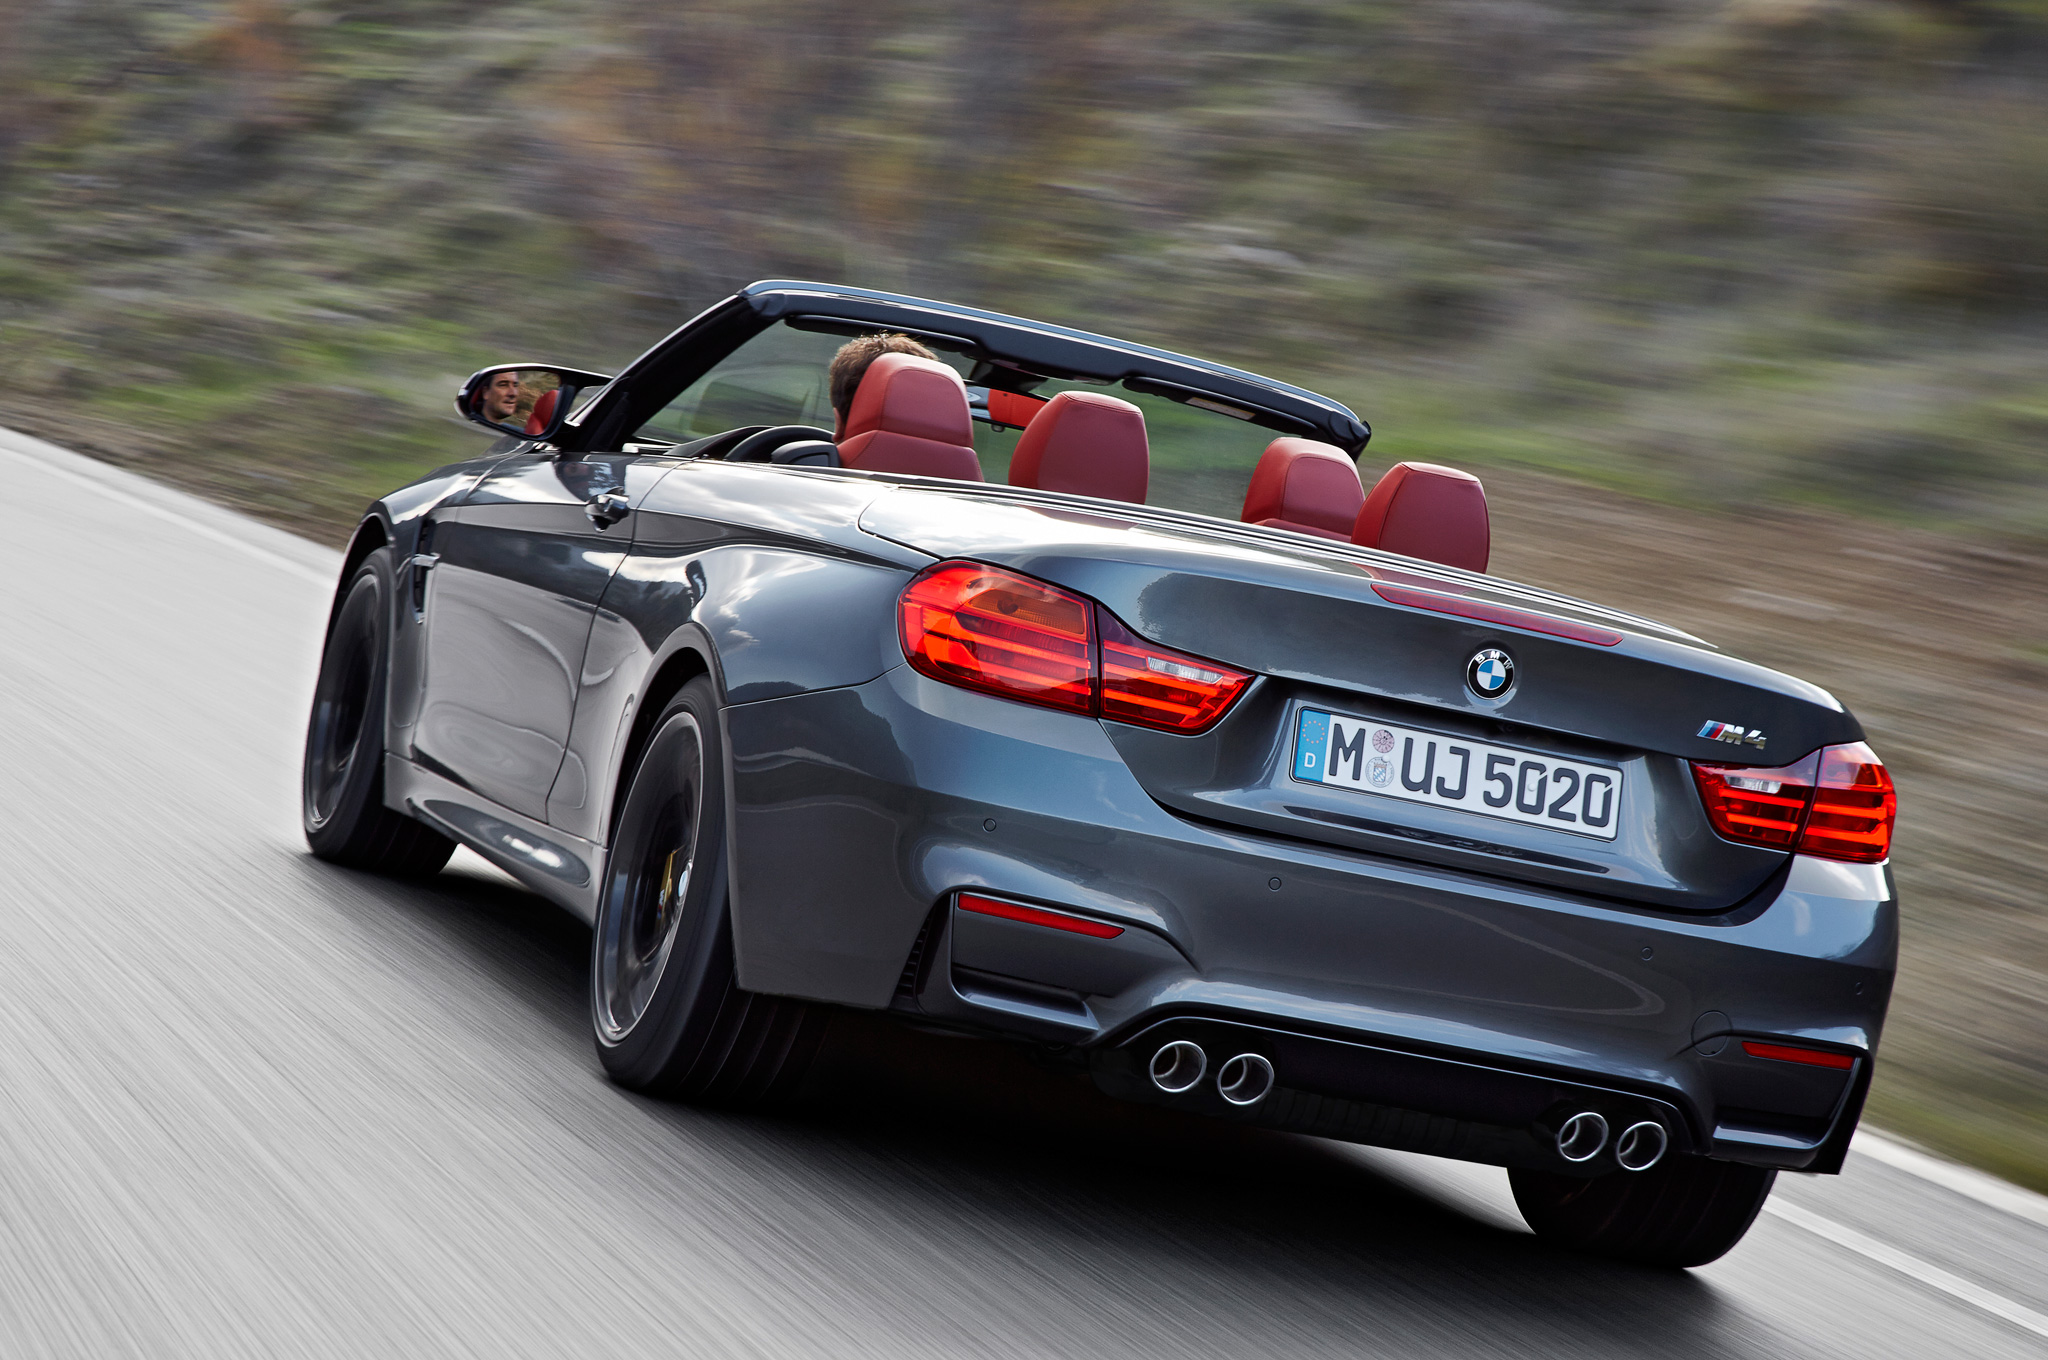 2015 Bmw M4 Convertible Rear View (Photo 42 of 50)